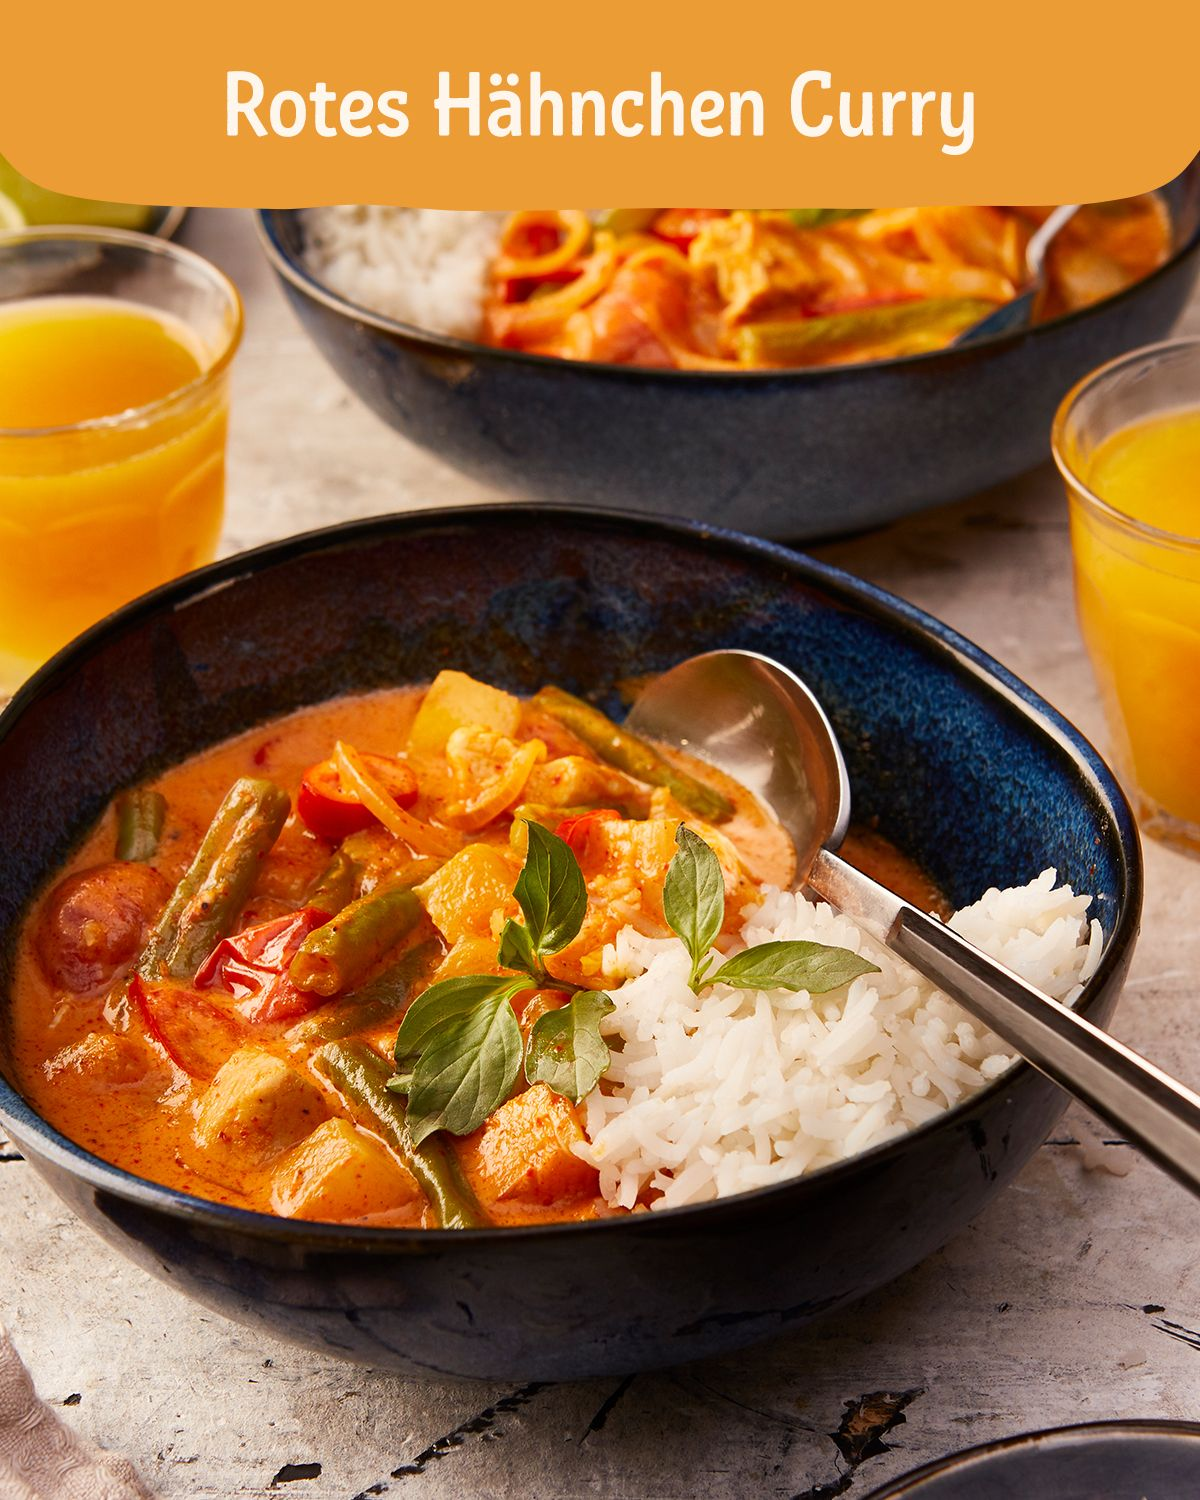 Rotes Hähnchen Curry